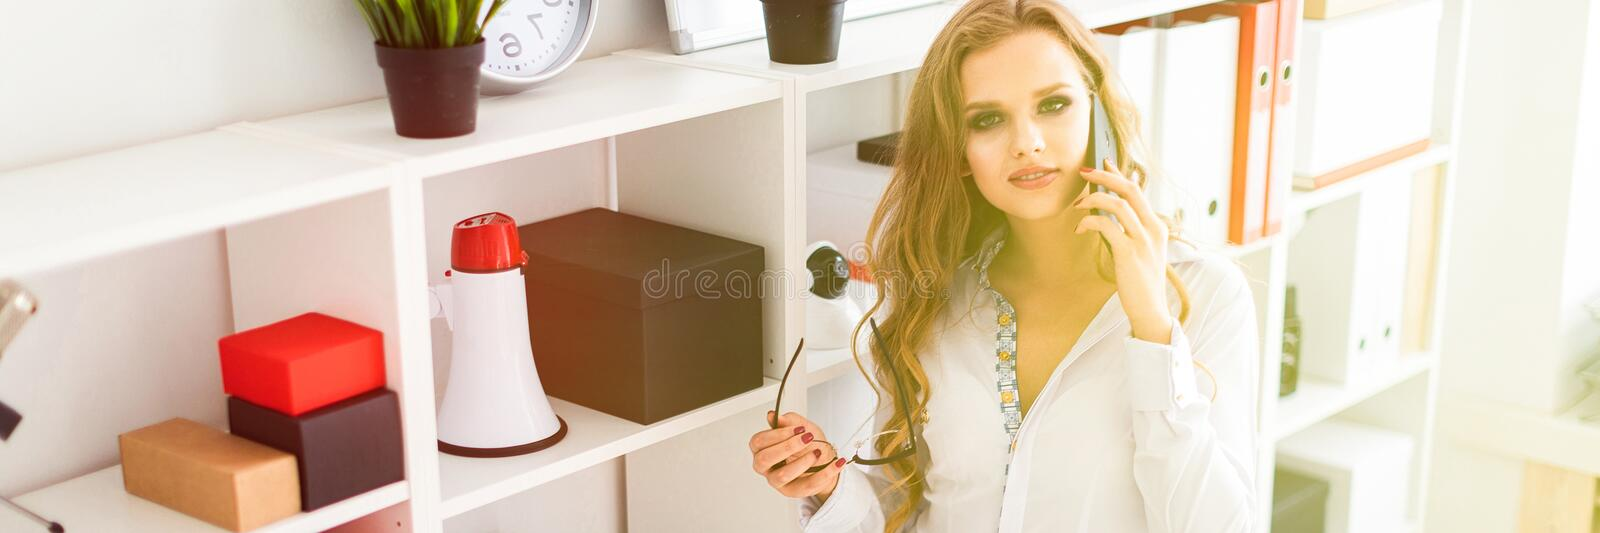 A beautiful young girl stands near a rack in the office, talking on the phone and holding glasses in her hand. royalty free stock photography